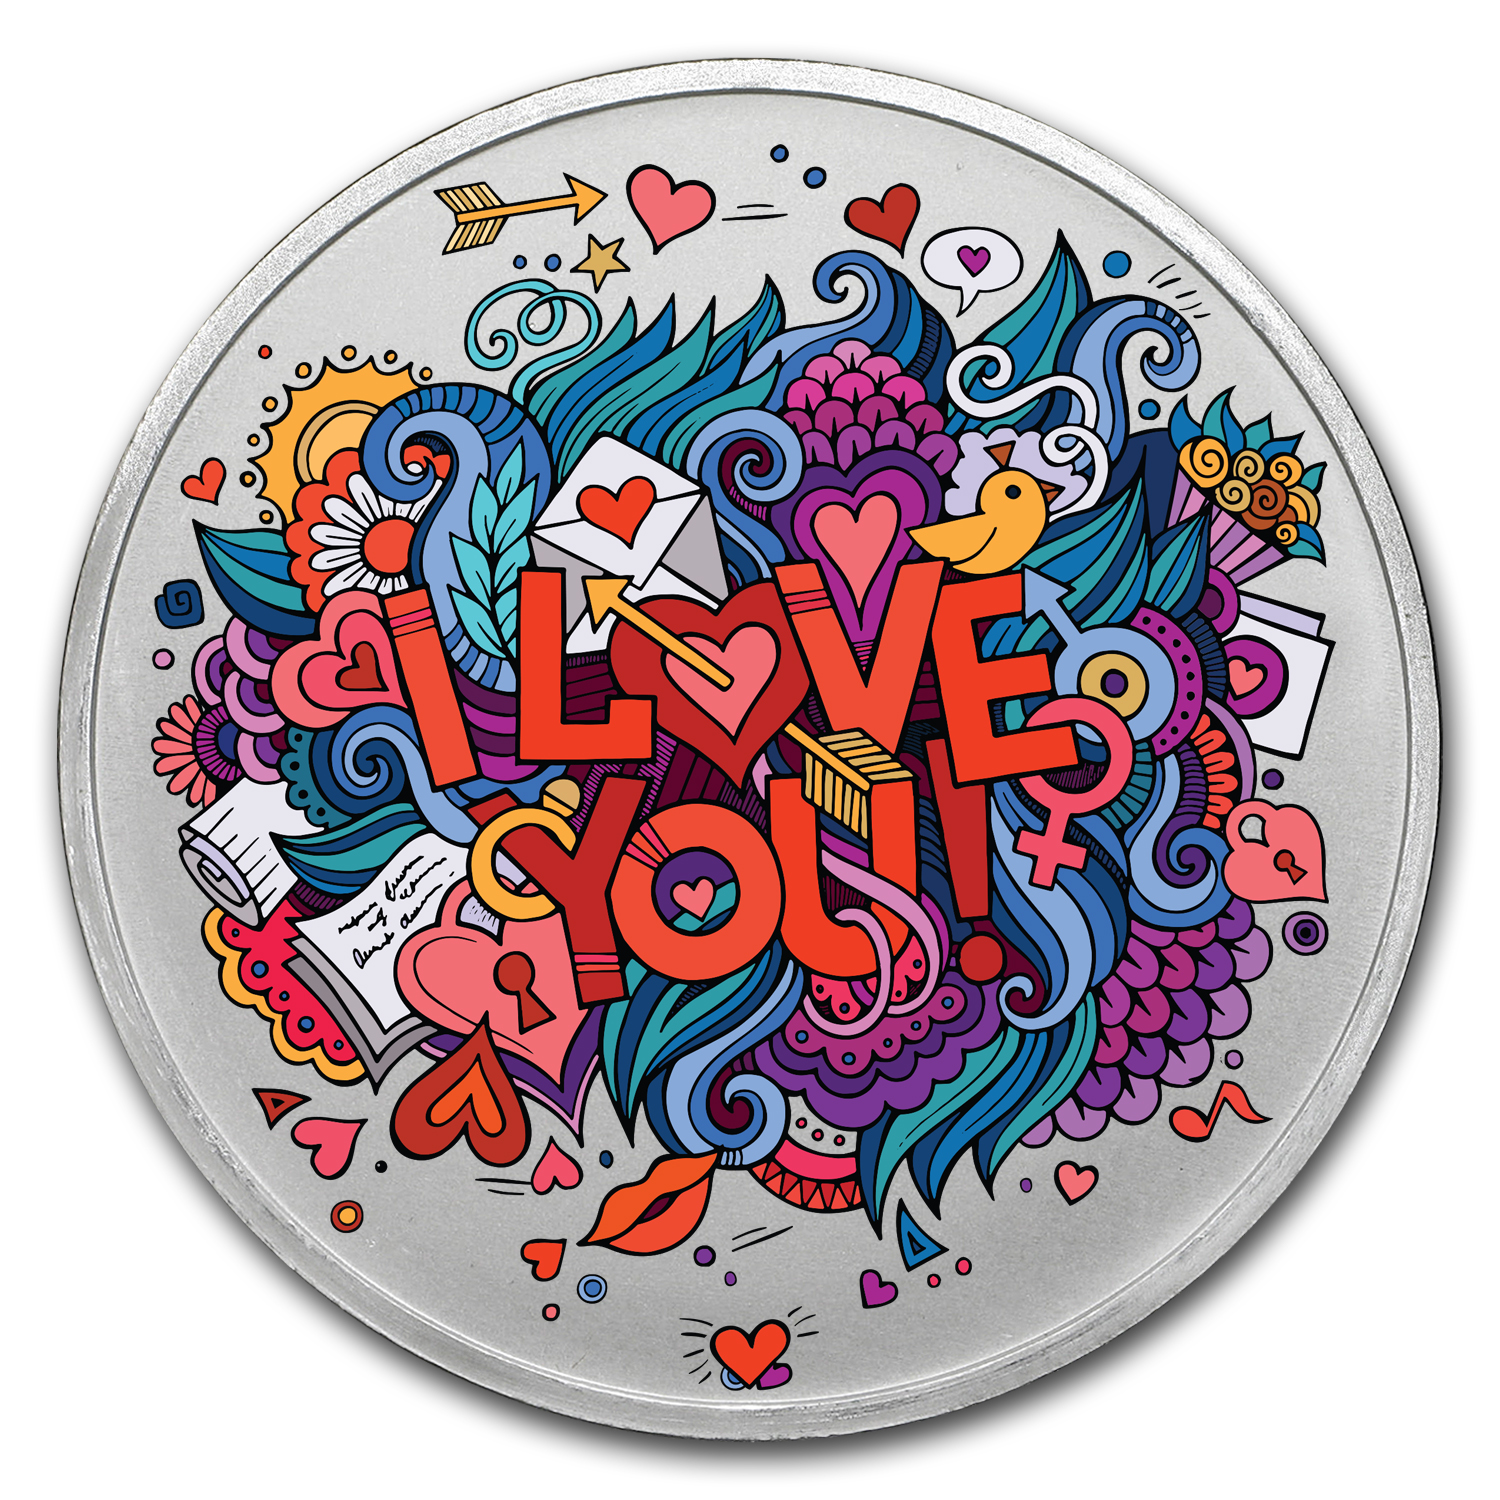 1 oz Silver Colorized Round - APMEX (Crazy Love)